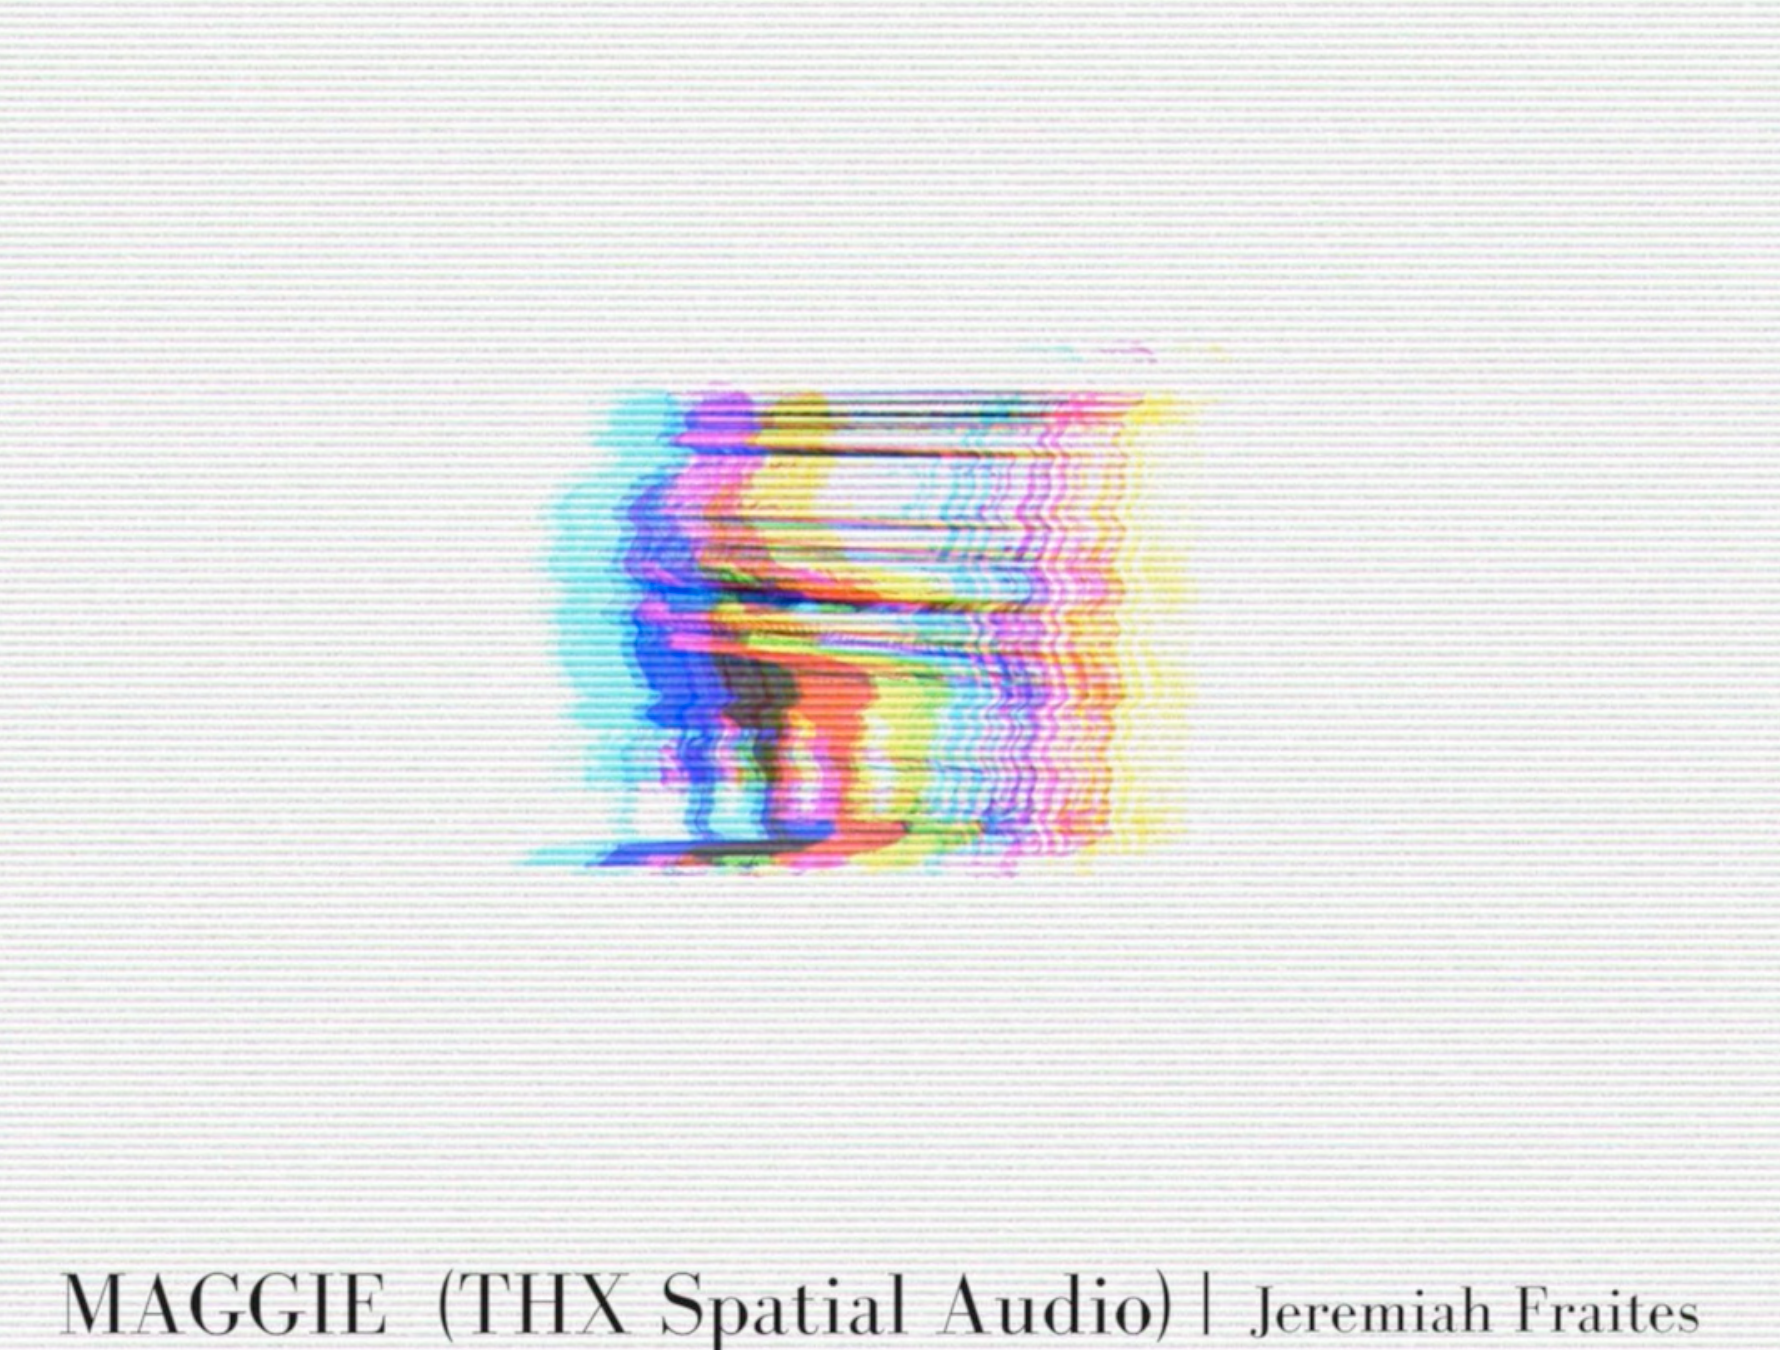 Maggie Song by Jeremiah Fraites Spatialized by THX